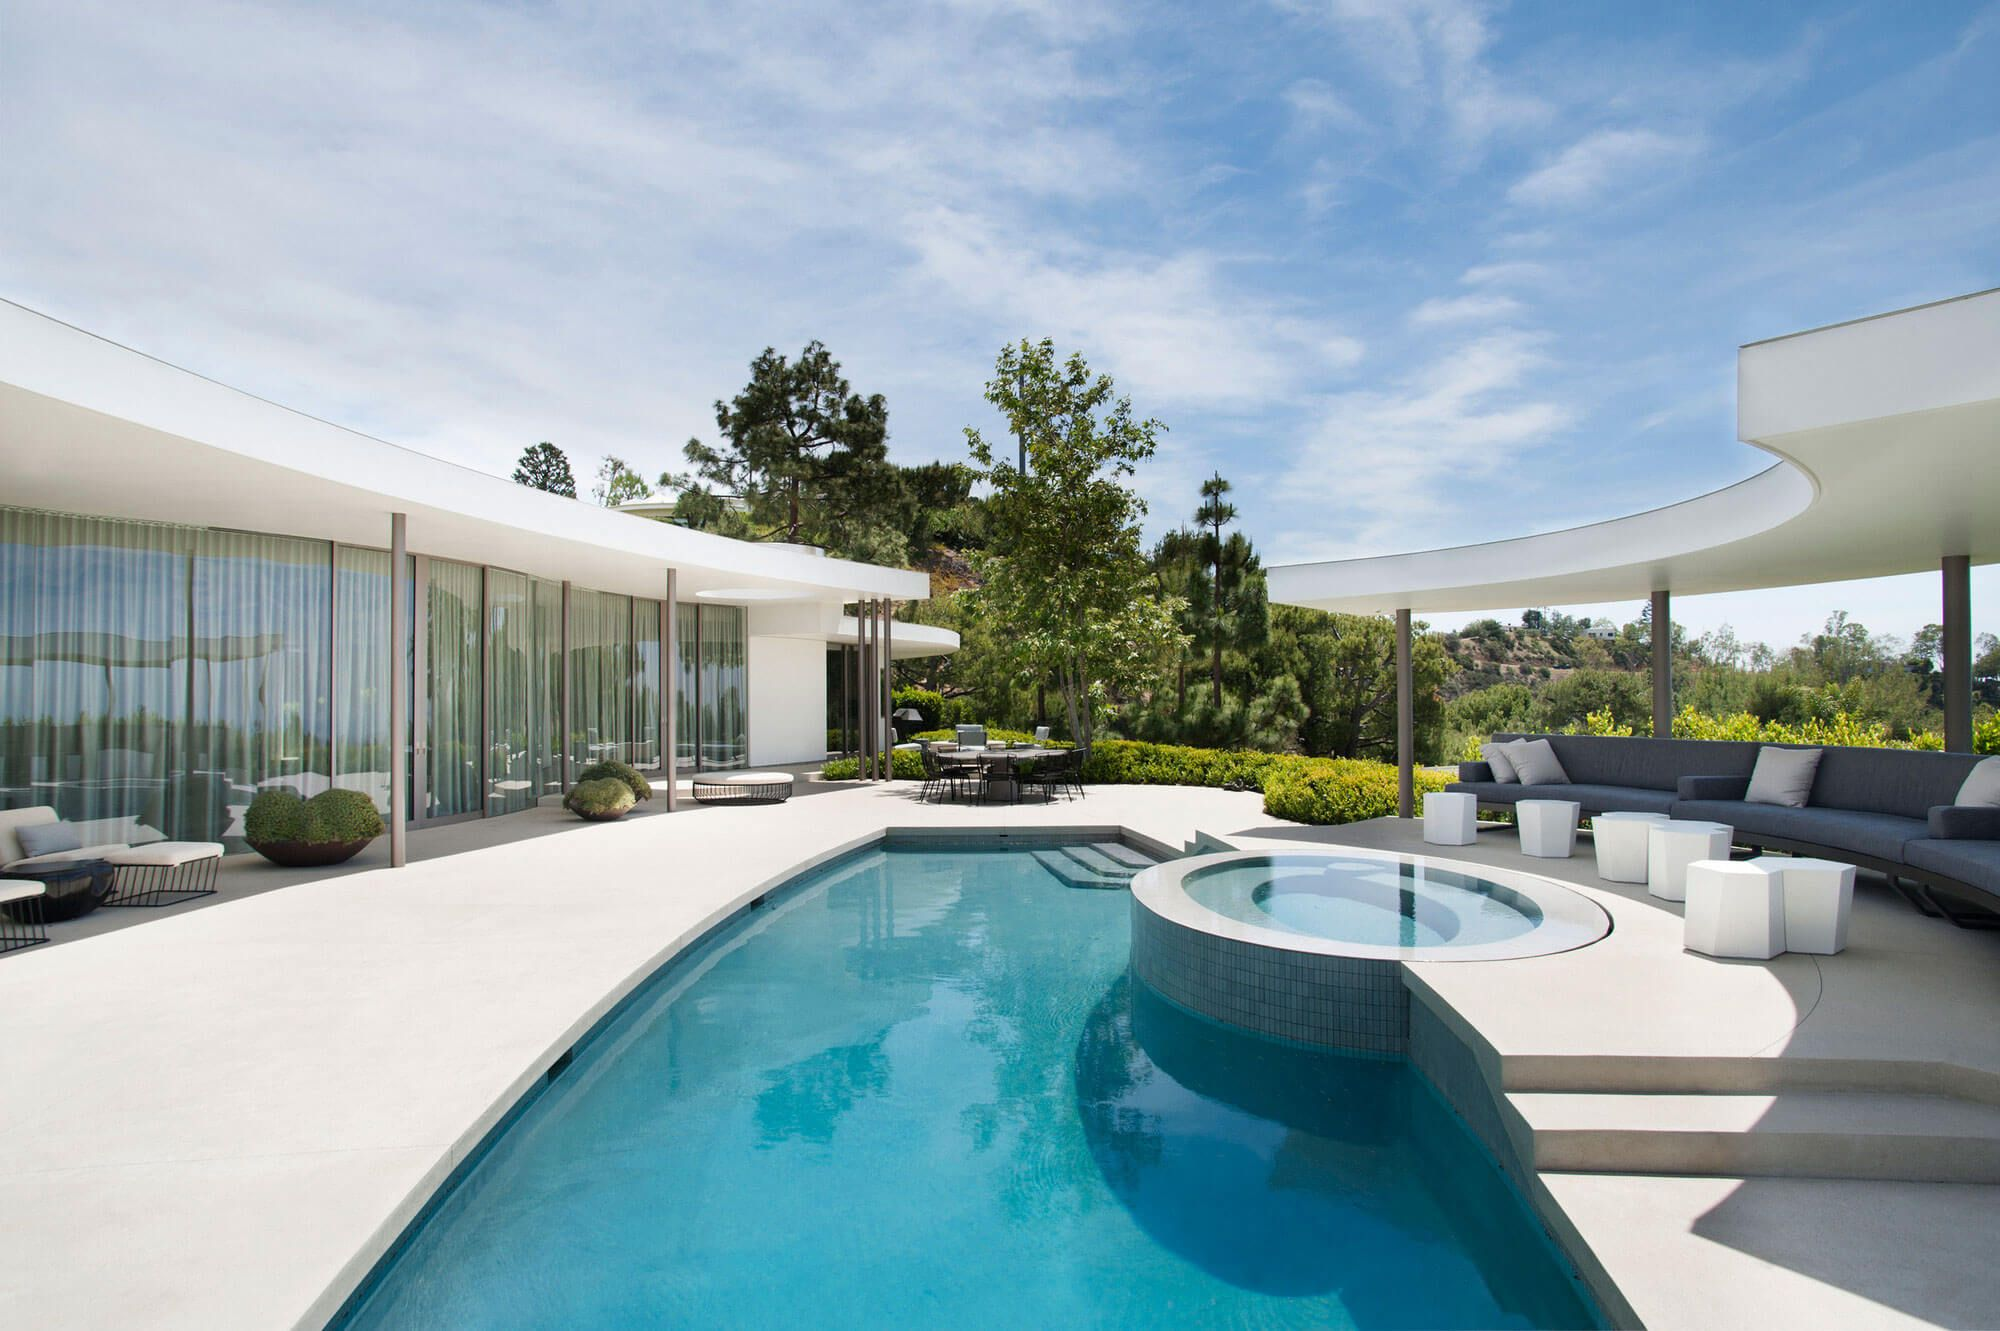 Home in Beverly Hills by Dennis Gibbens Architects | Architecture ...